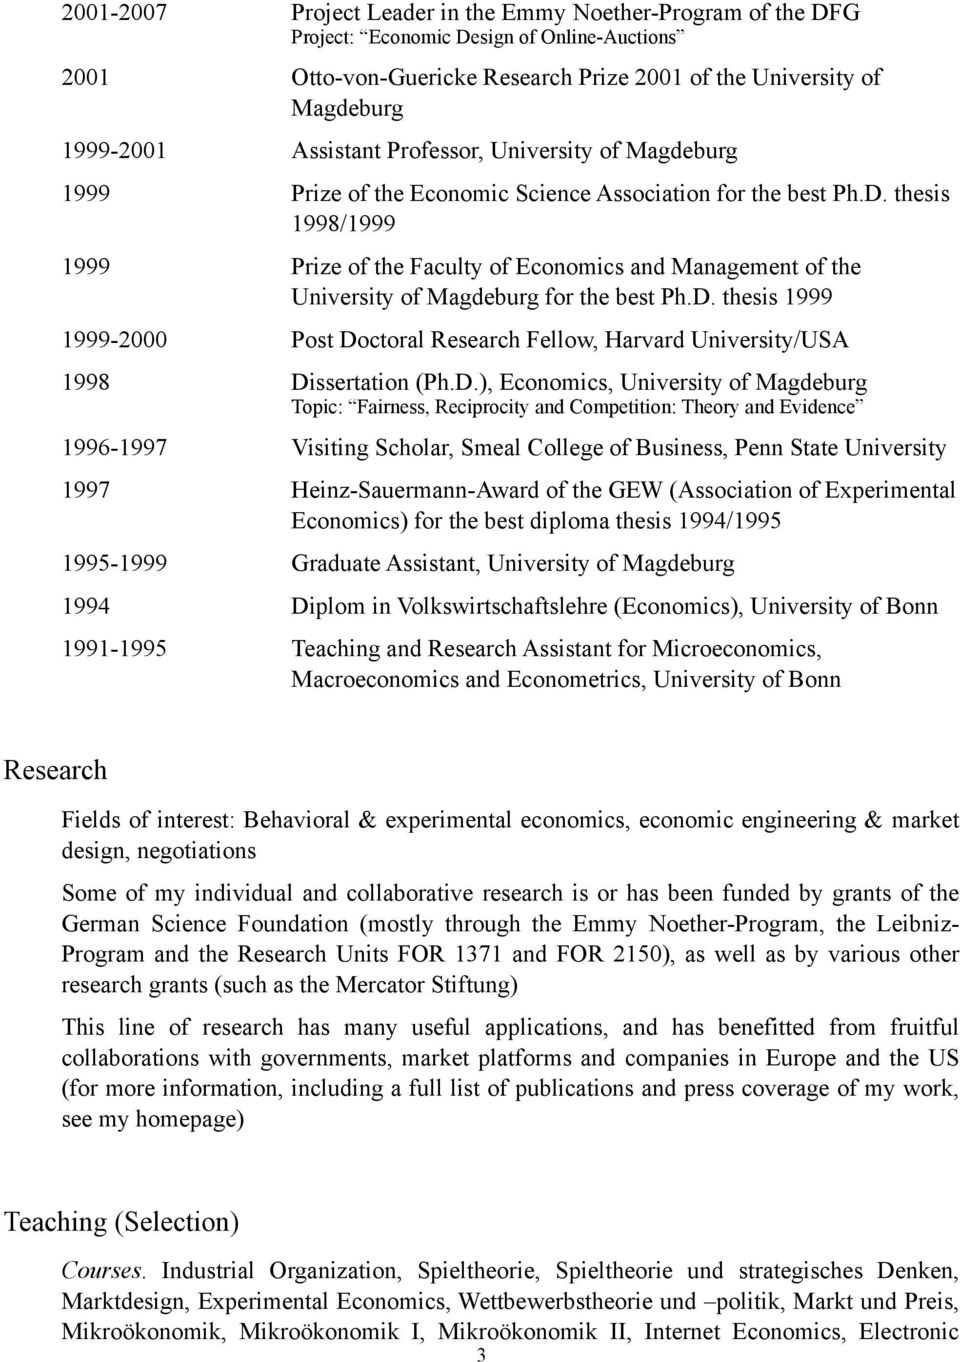 thesis 1998/1999 1999 Prize of the Faculty of Economics and Management of the University of Magdeburg for the best Ph.D.